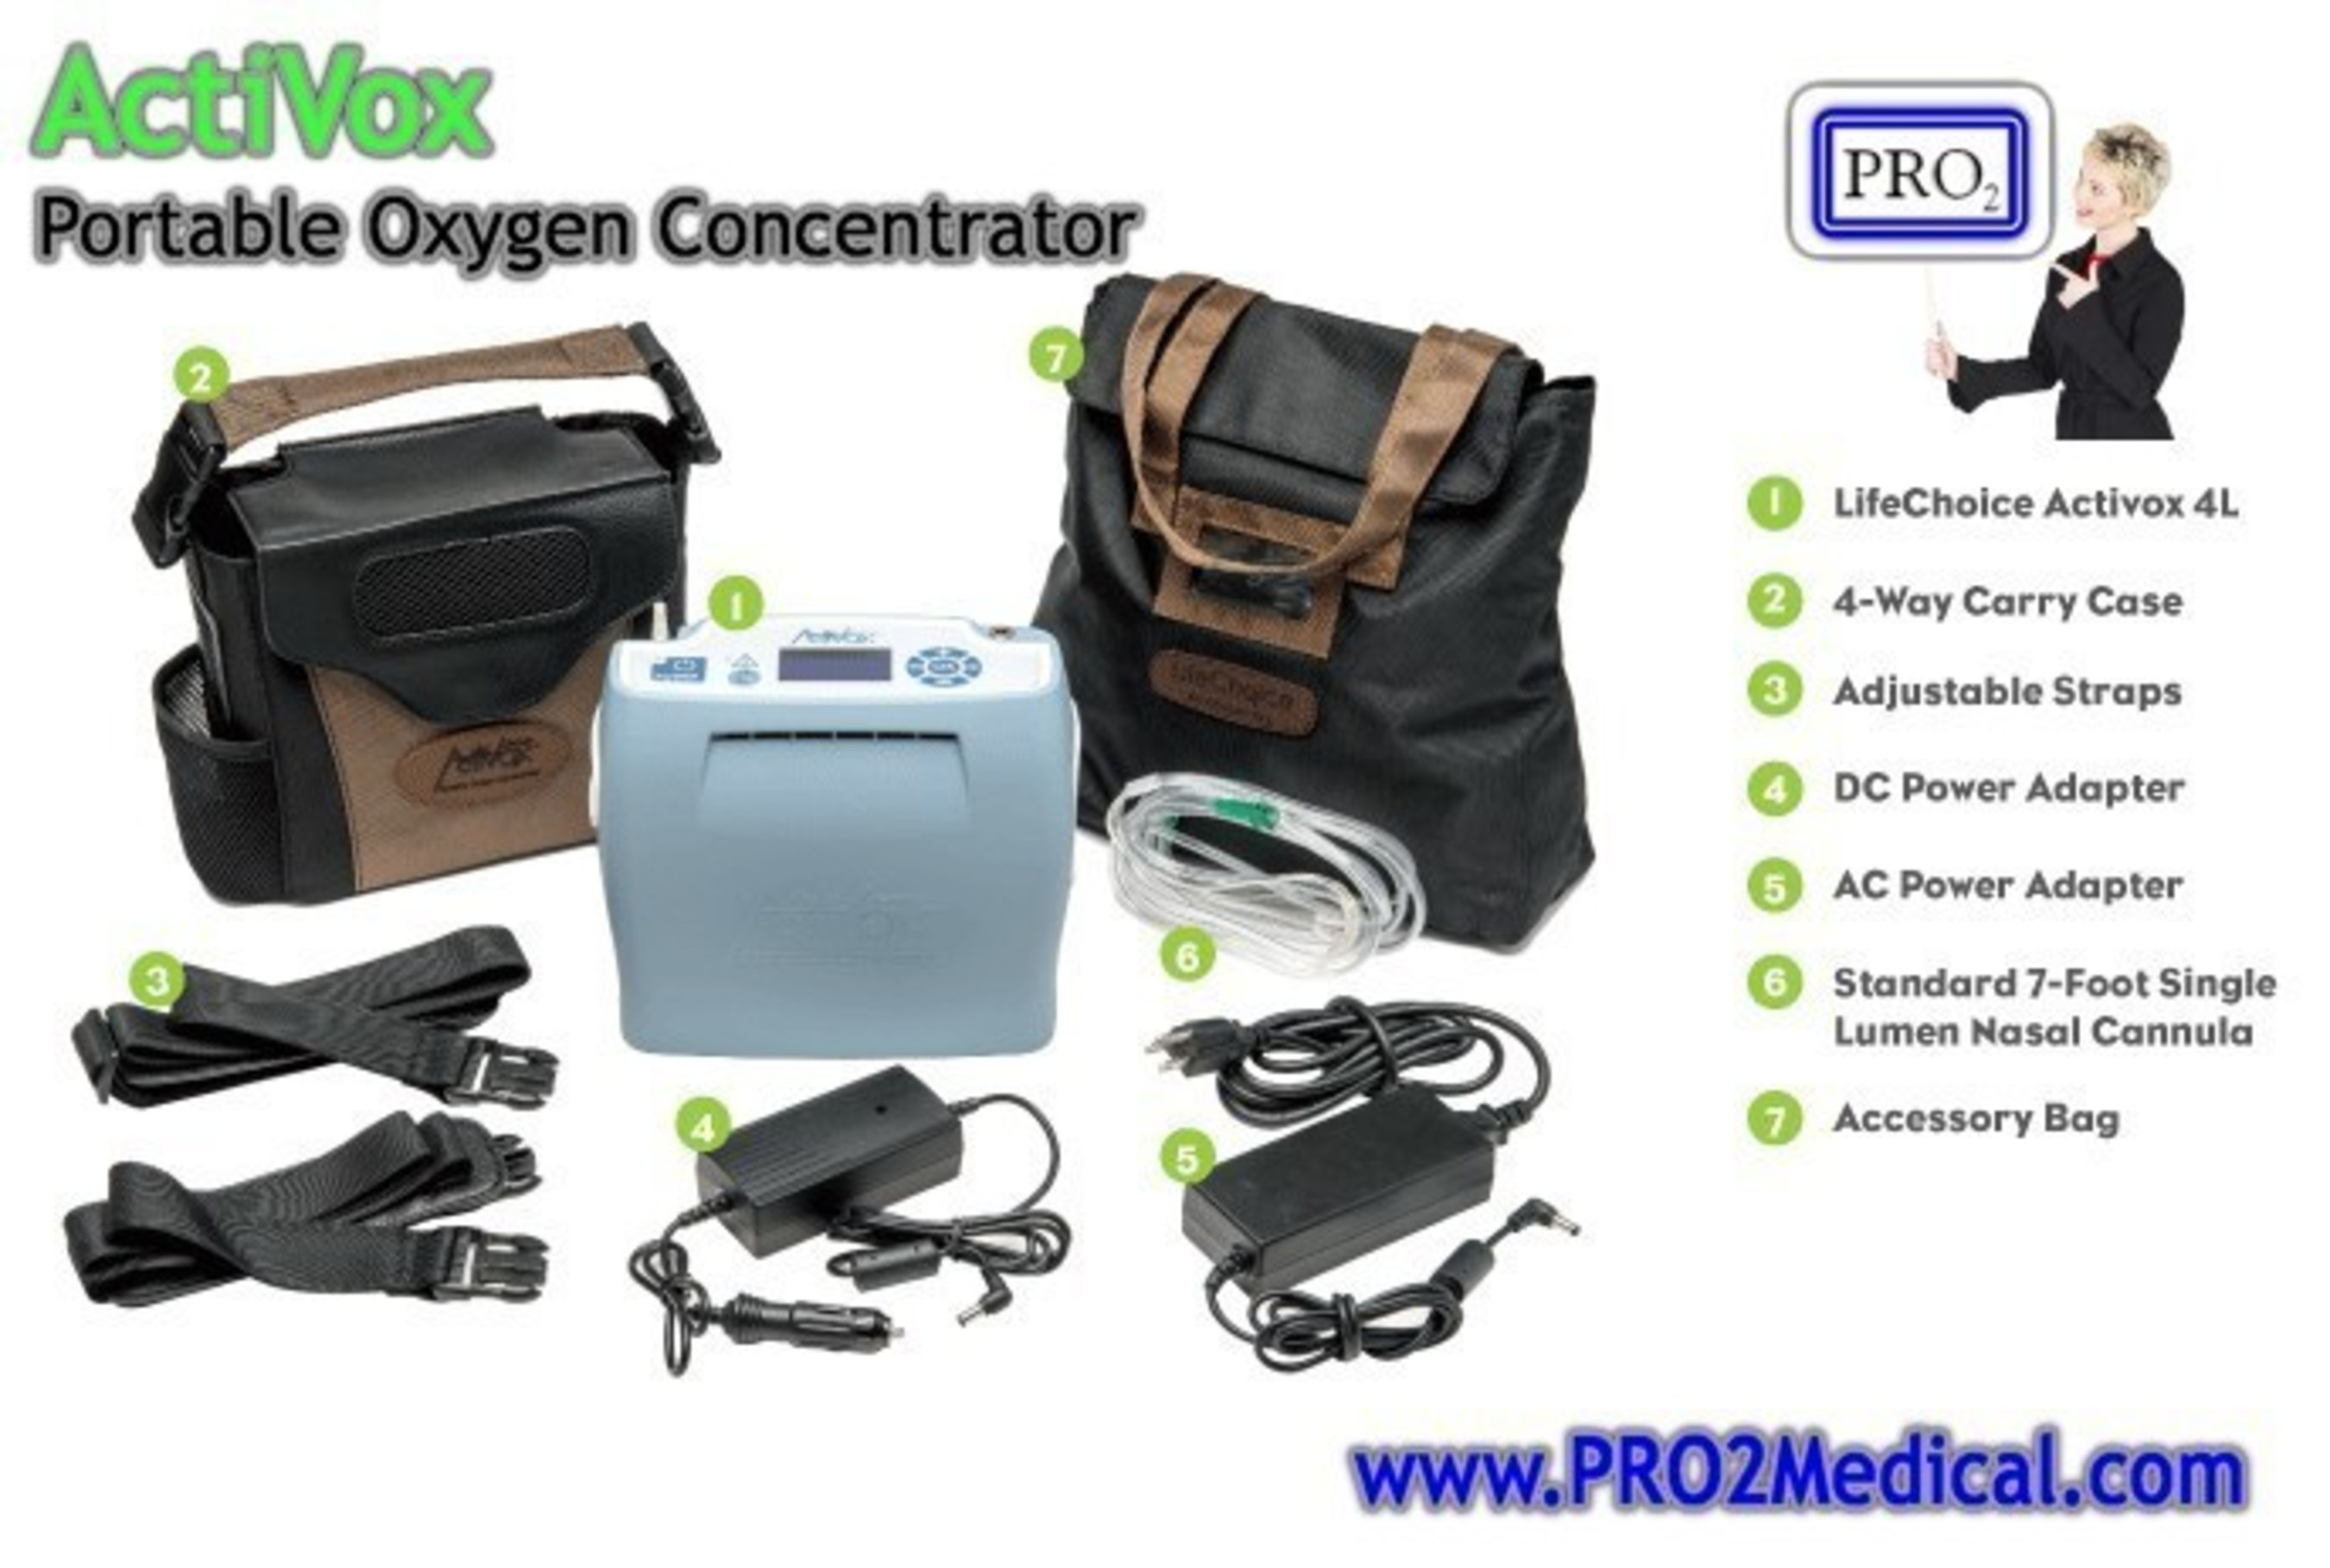 PRO2 Medical Supplies Announces Availability of the ActiVox